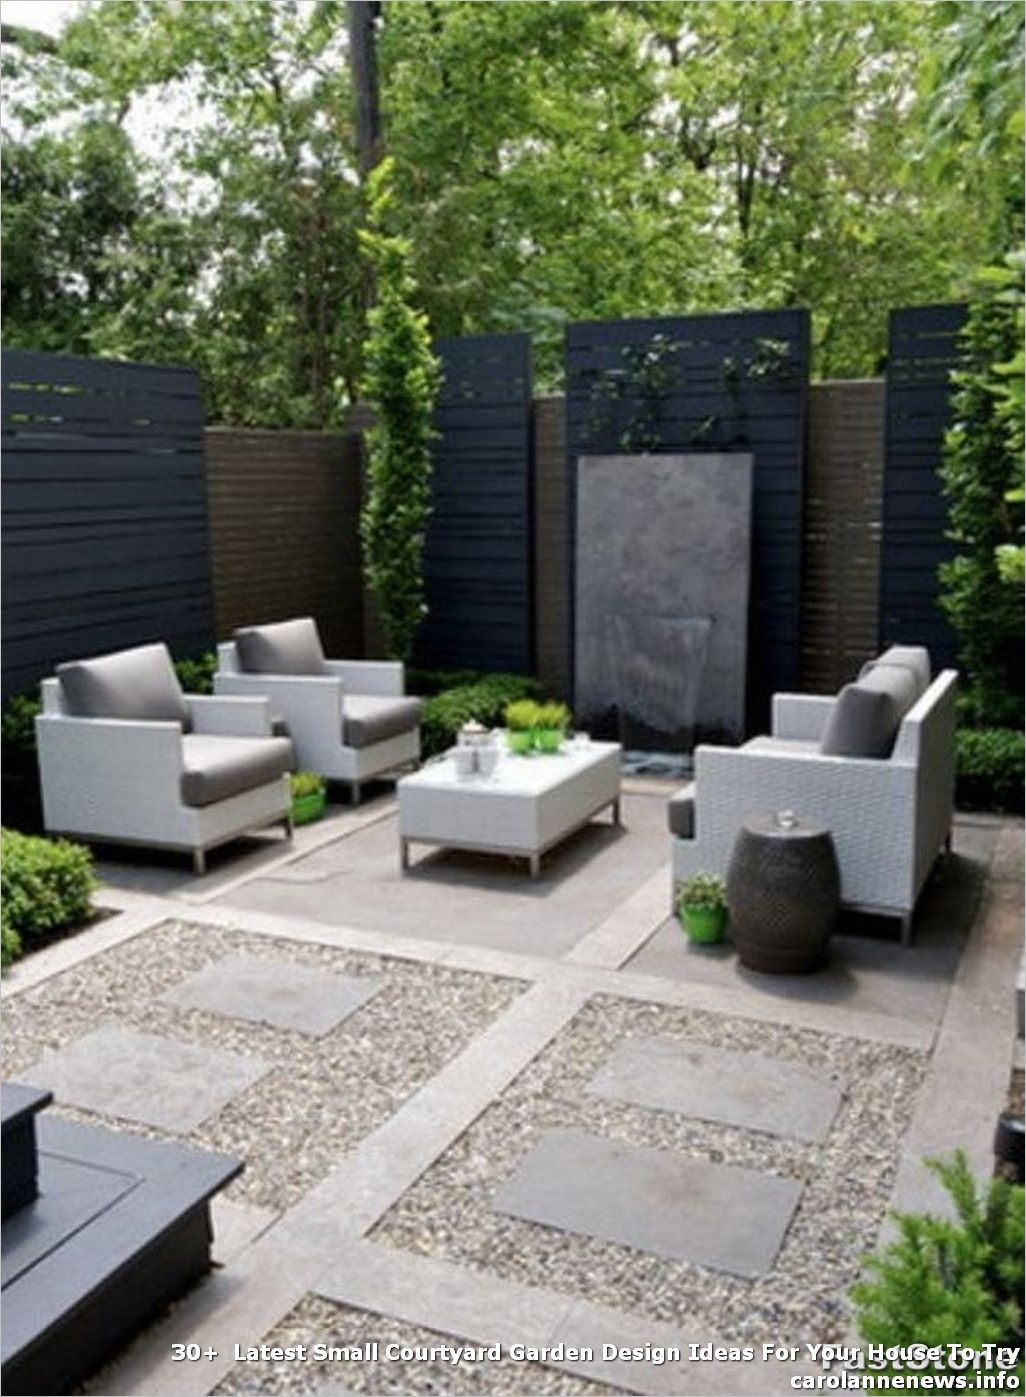 30 Latest Small Courtyard Garden Design Ideas For Your House To Try Backyard Seating Area Modern Backyard Landscaping Backyard Landscaping Designs New house backyard design